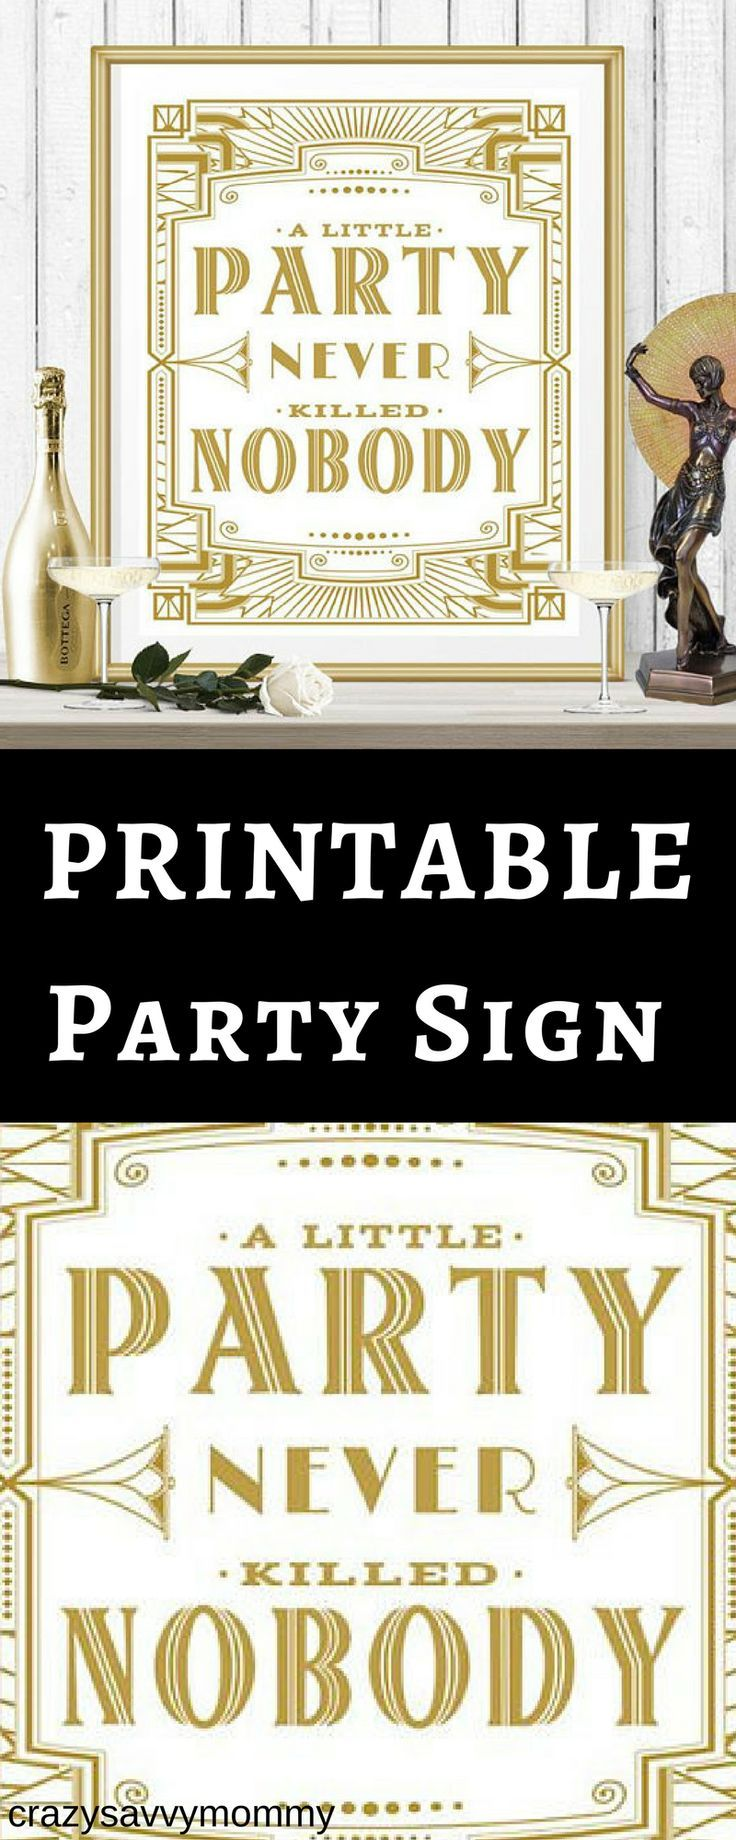 """ONLY $4.95!!! PRINTABLE New Years Eve Party Sign. Inspired by The Great Gatsby, party like its 1920! Gold and white """"A little party never killed nobody"""" sign is great for your New Years Eve, birthday, or wedding event. Click the link to get it NOW at Etsy.com! #newyearsevepartyideas #partyideas #roomdecor #bridalshowerideas #printables #winterwedding #ad"""